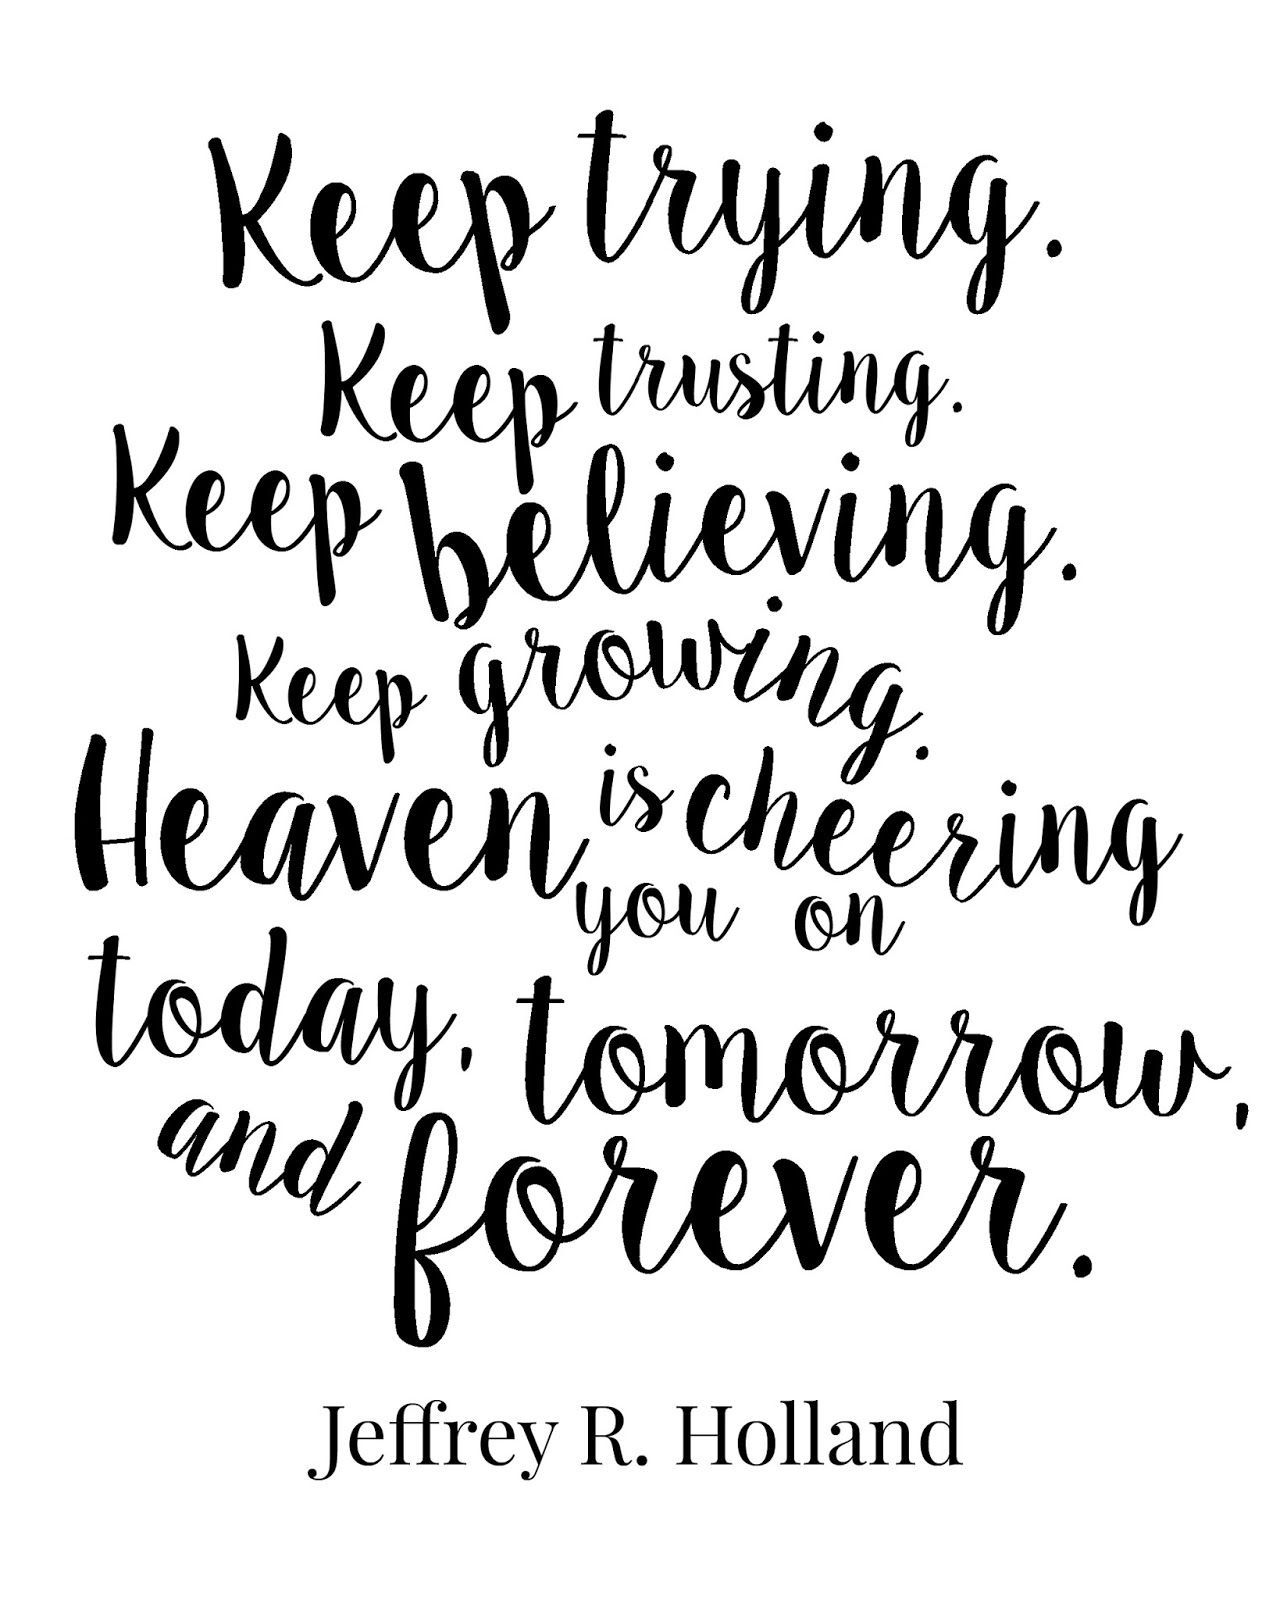 Keep believing keep growing heaven is cheering you on today tomorrow and forever jeffrey r holland lds lds conference general conference quote